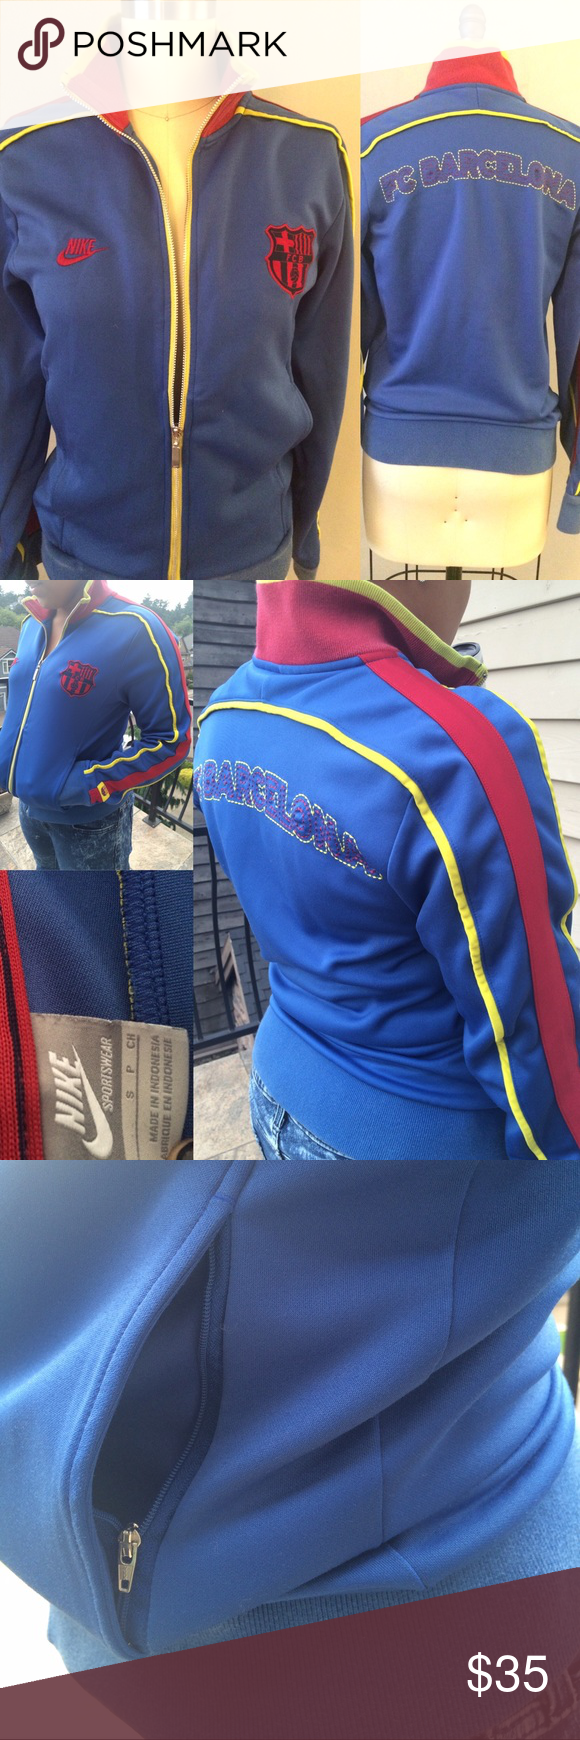 Nike Women's FC Barcelona ⚽️ Jacket Stylish Nike ⚽️ FC Barcelona Jacket •Zipper Pockets •Blue🔵 + Yellow⚠️ + Red🔴 Colors •Great Fit! •Barely worn 👌 ‼️(a small hole on waistband + slight fade from washing ) SEE PICS📸 Nike Jackets & Coats